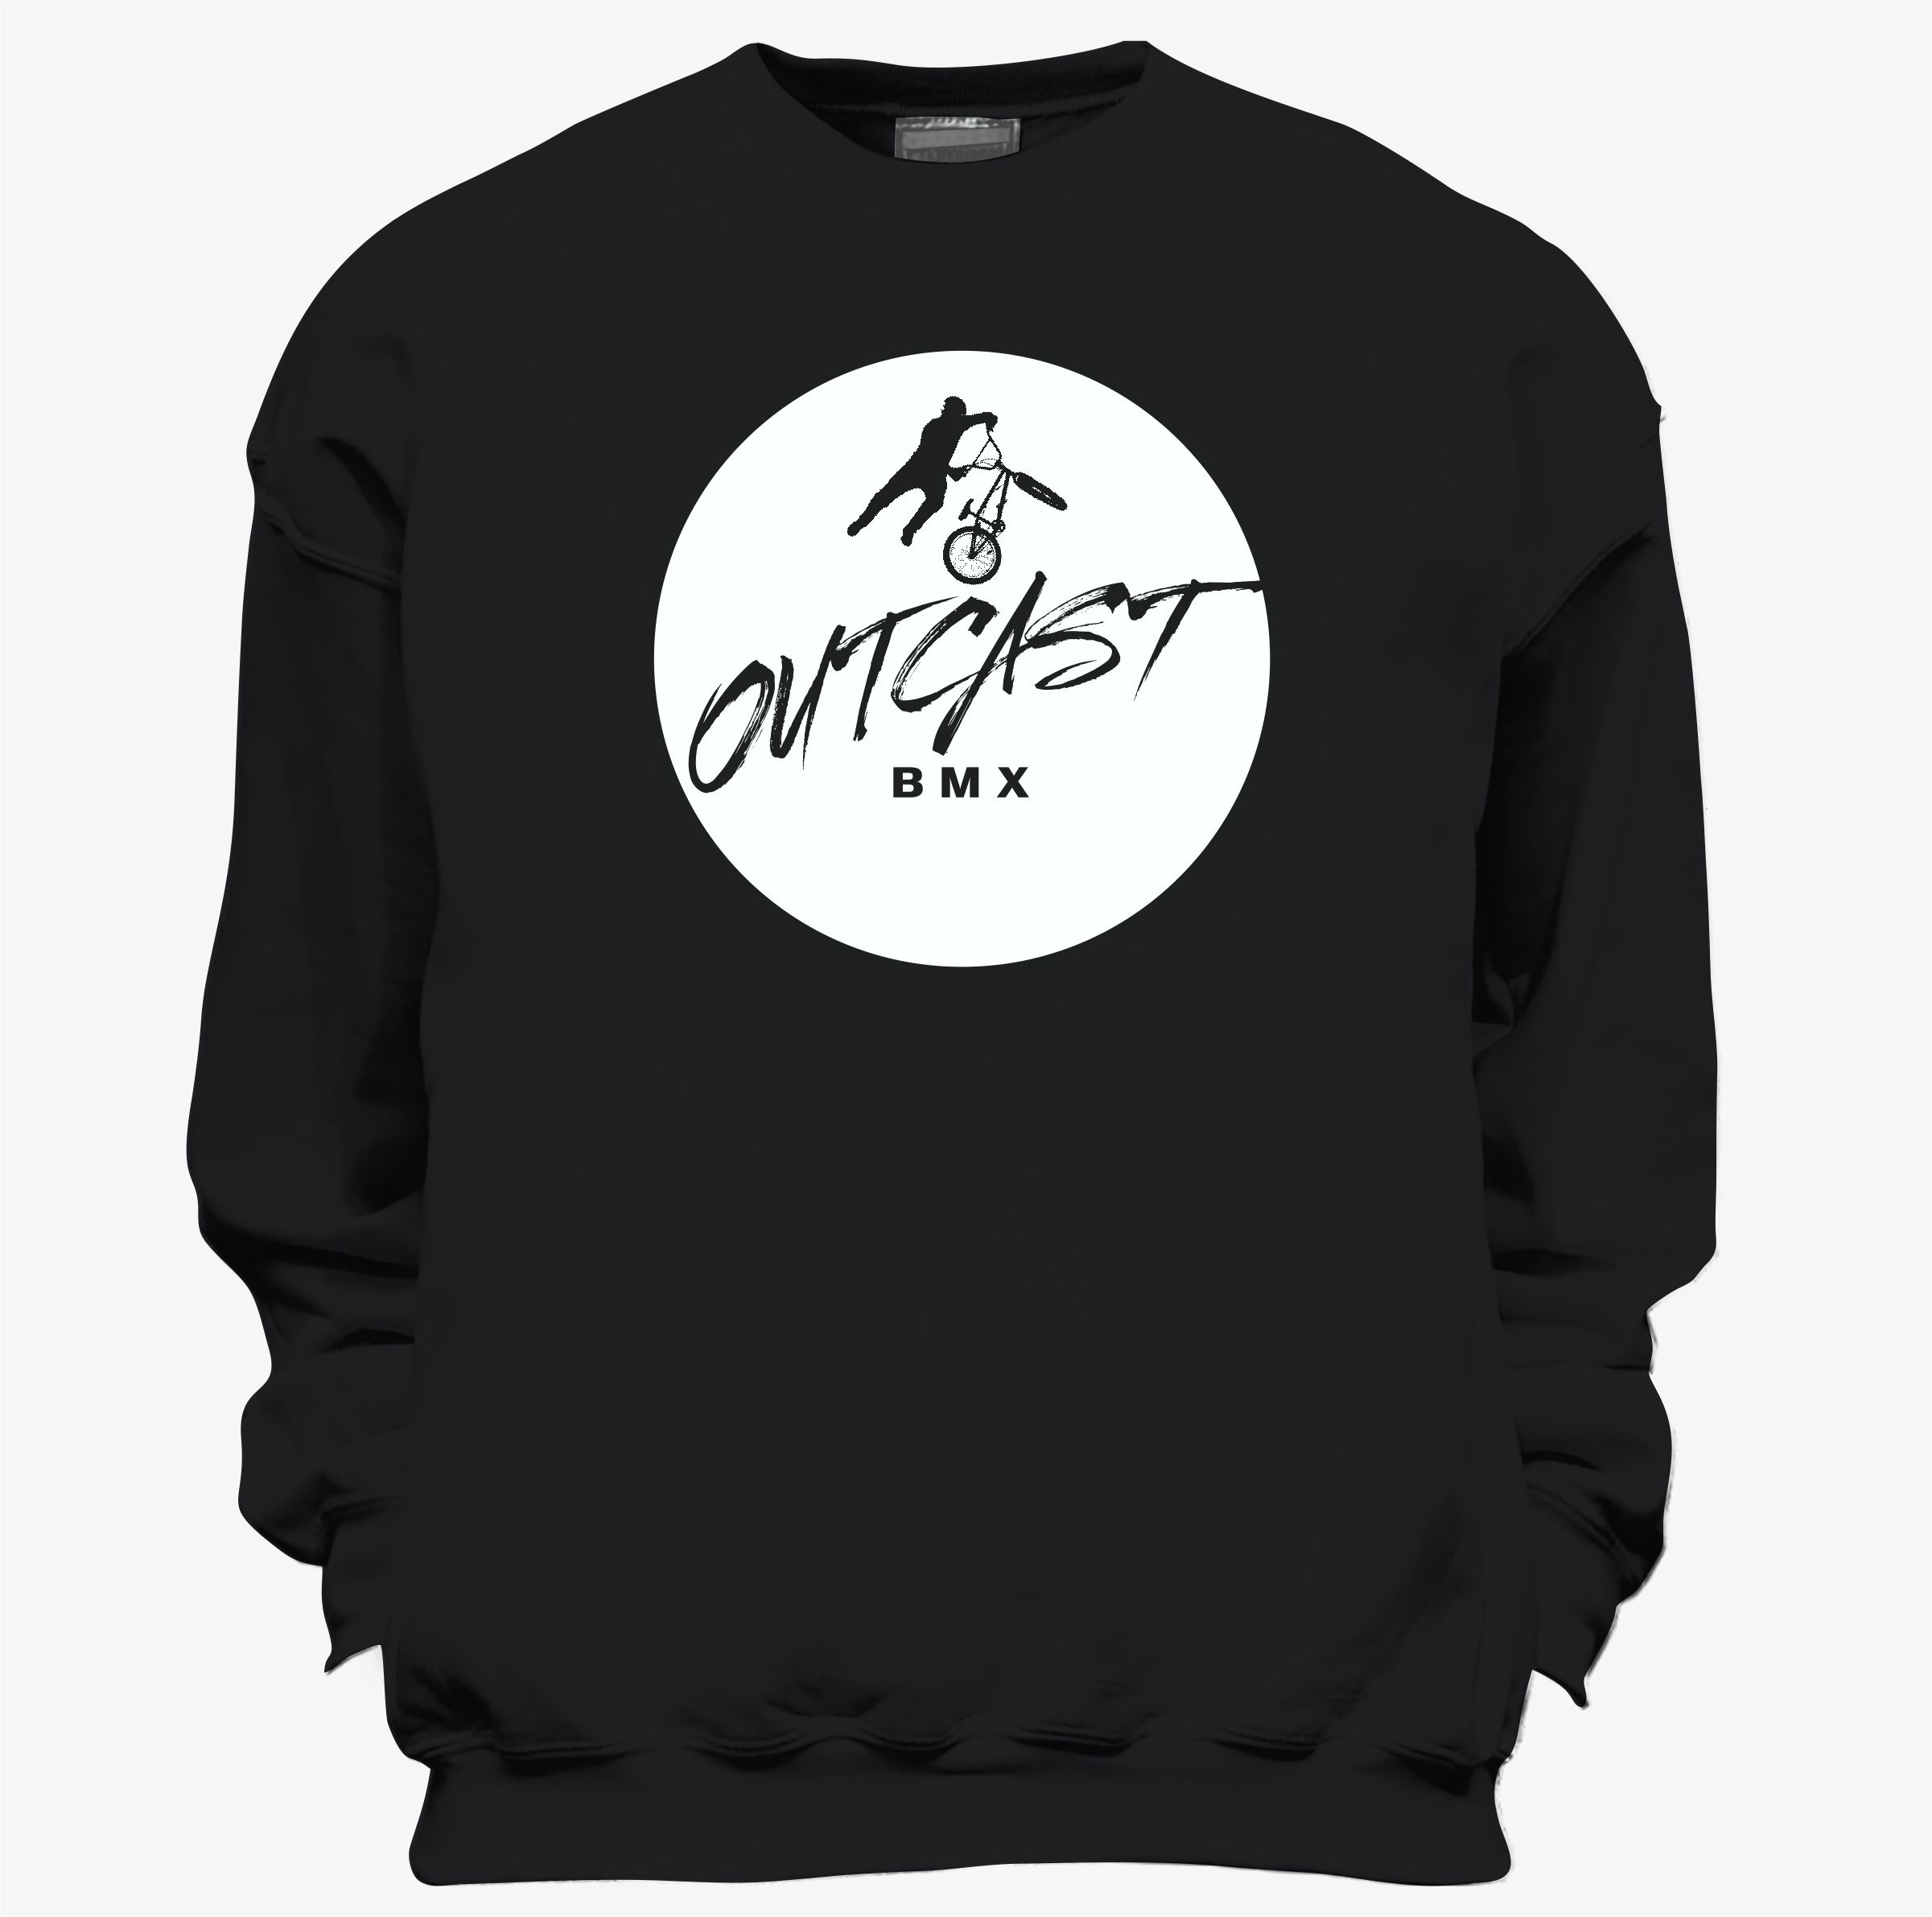 Outcast BMX Sweatshirt